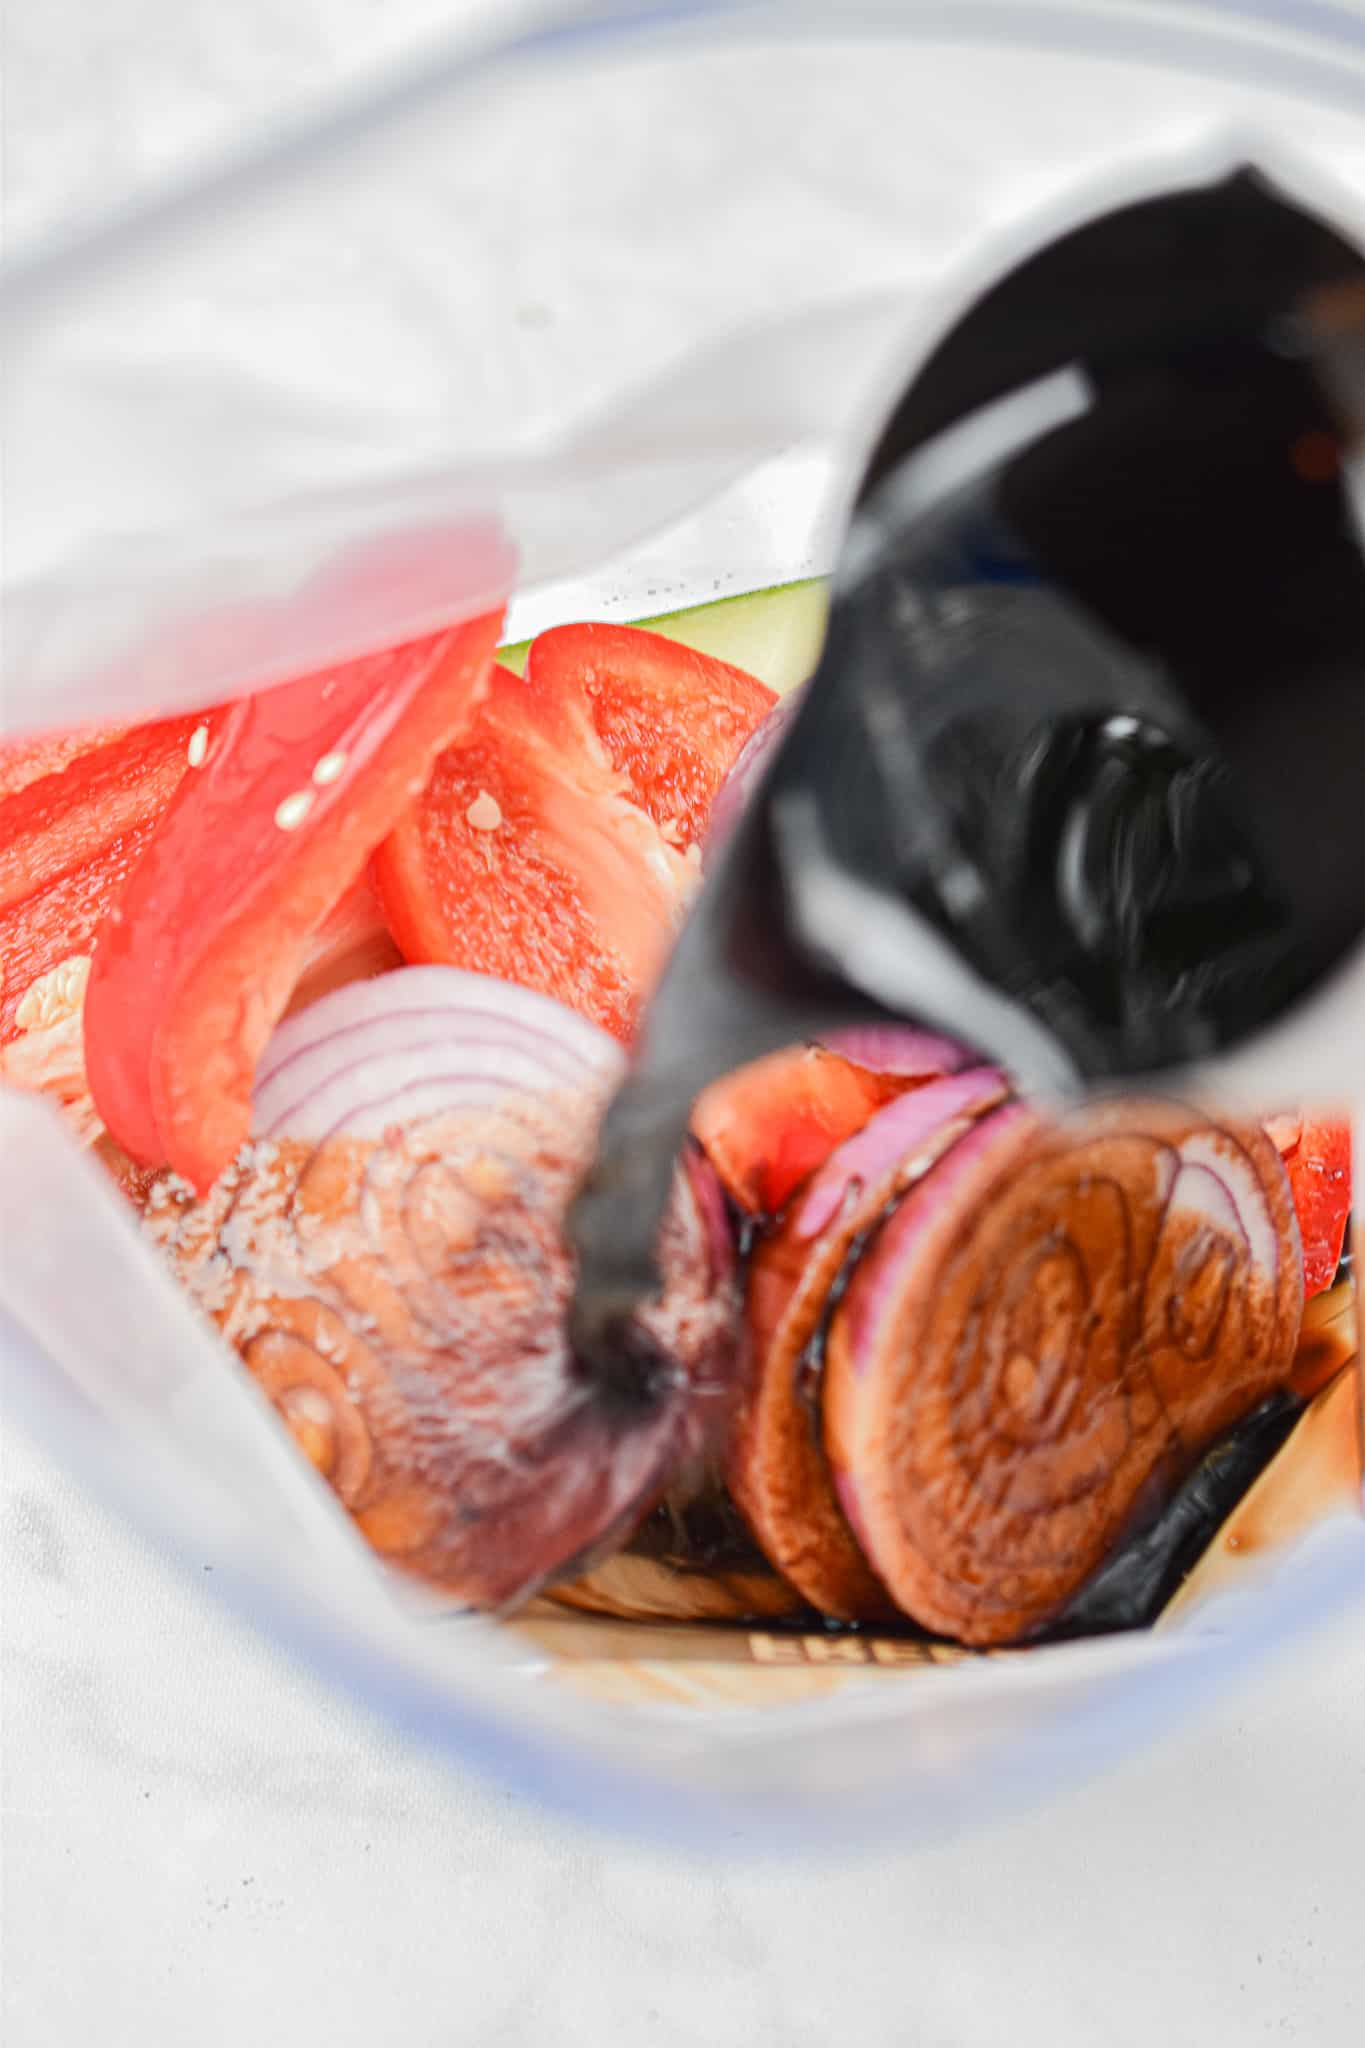 The balsamic vinegar is poured into the bag with the vegetables